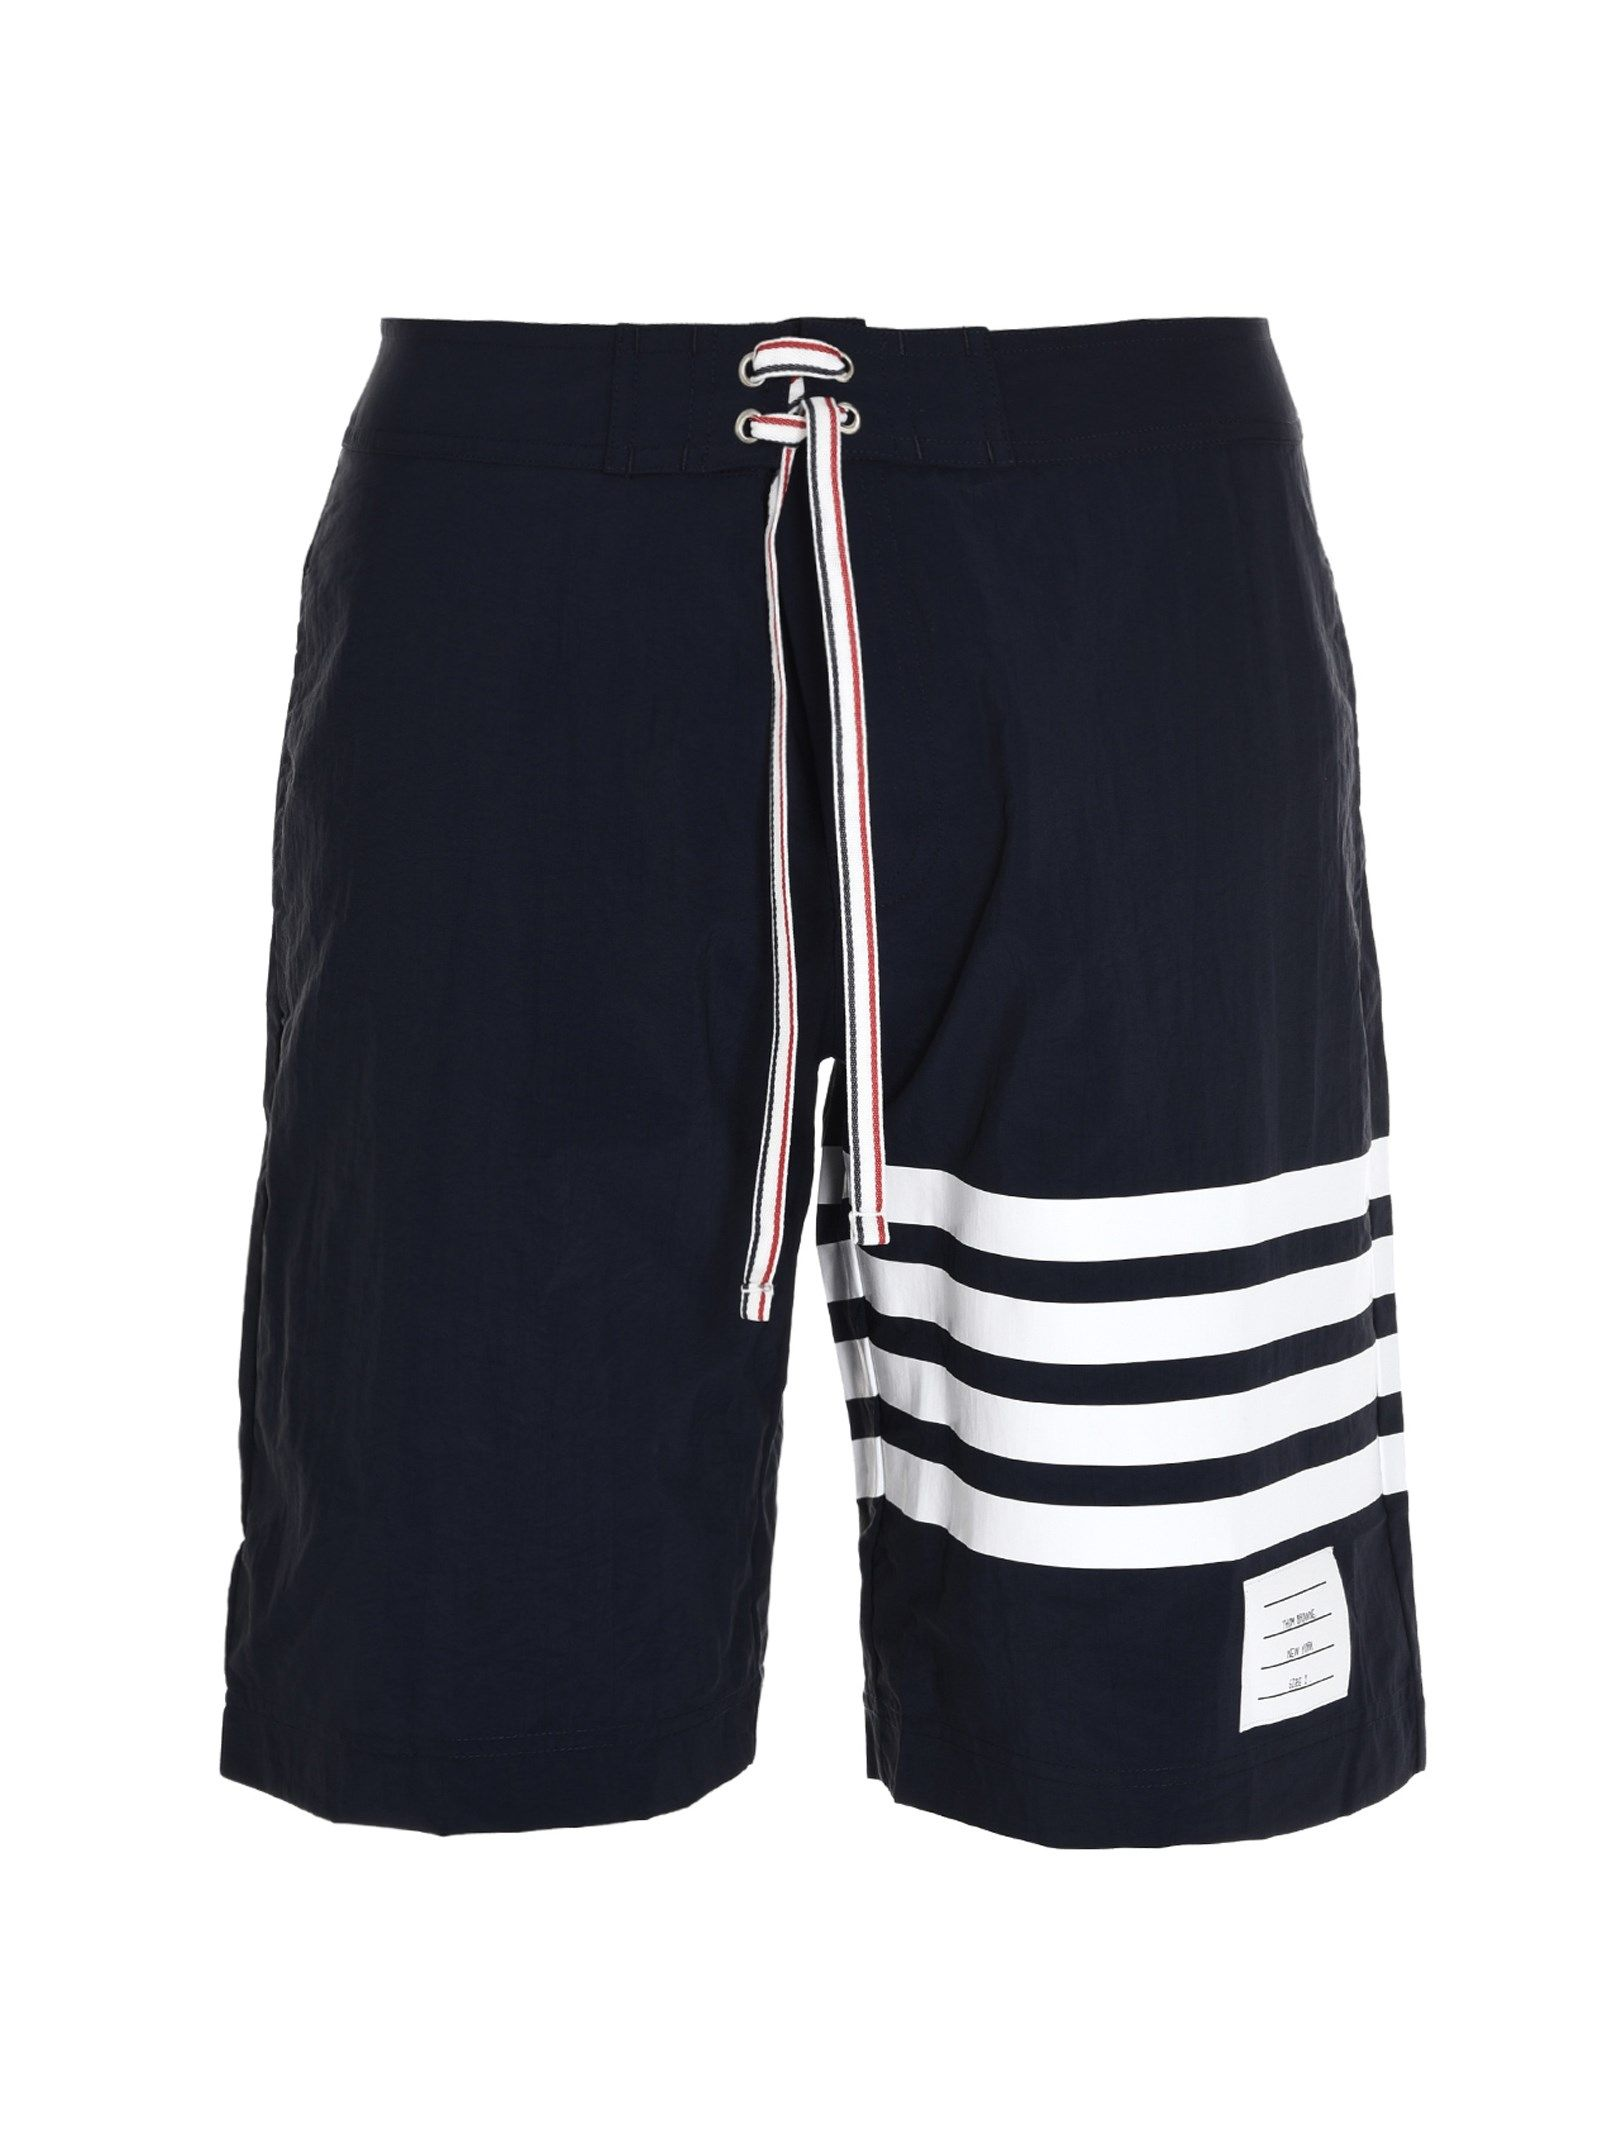 Thom Browne Clothing THOM BROWNE MEN'S MTU223A05415415 BLUE OTHER MATERIALS TRUNKS